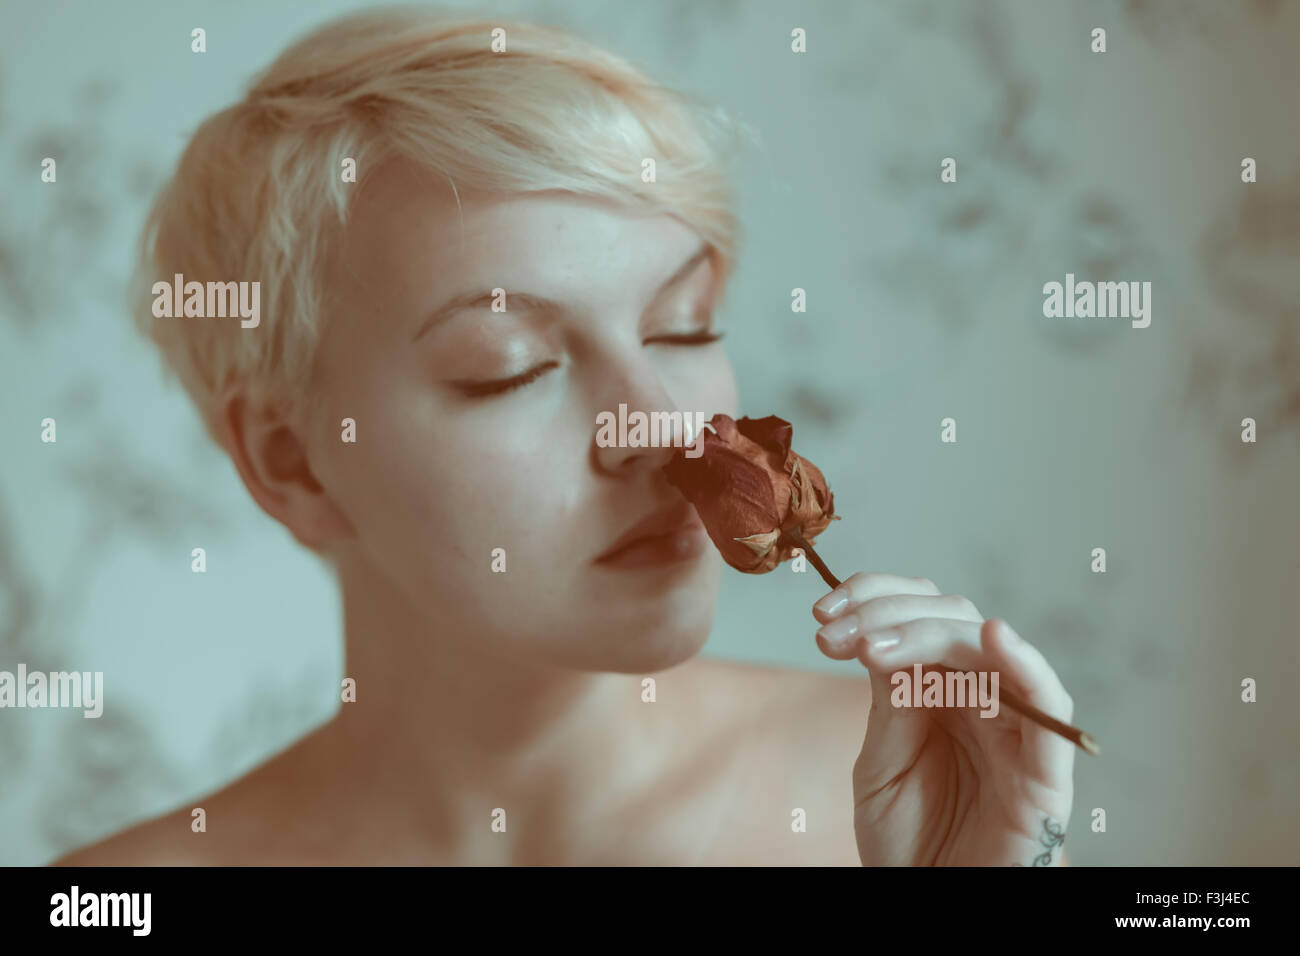 Blond teenage girl holding a dead rose - Stock Image